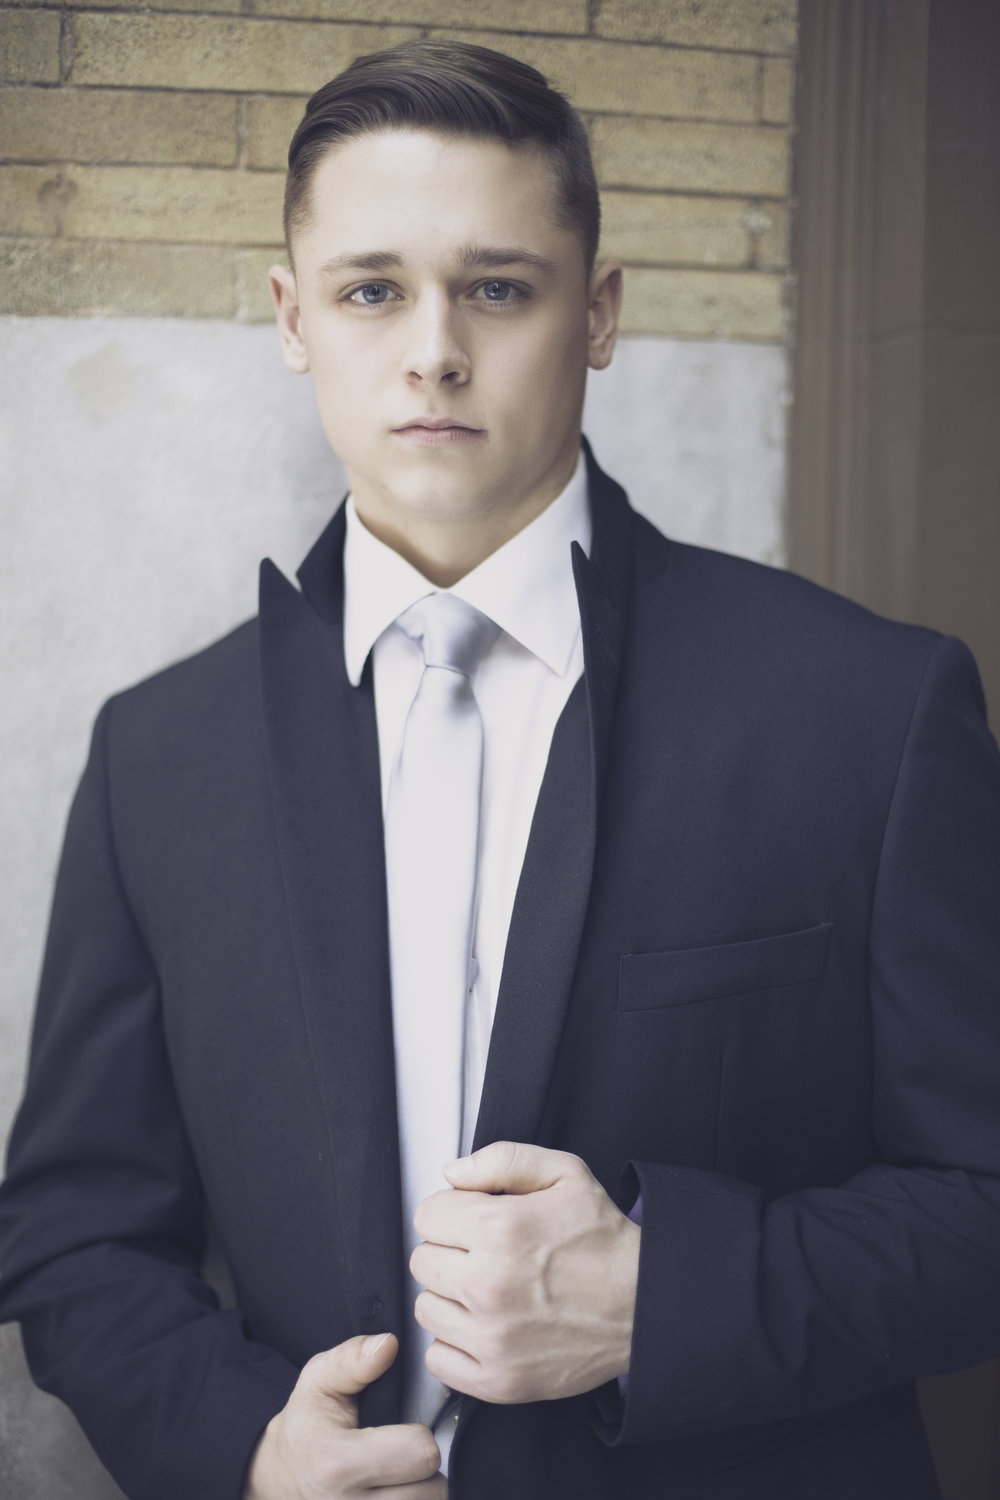 High School Senior Boy with Suit